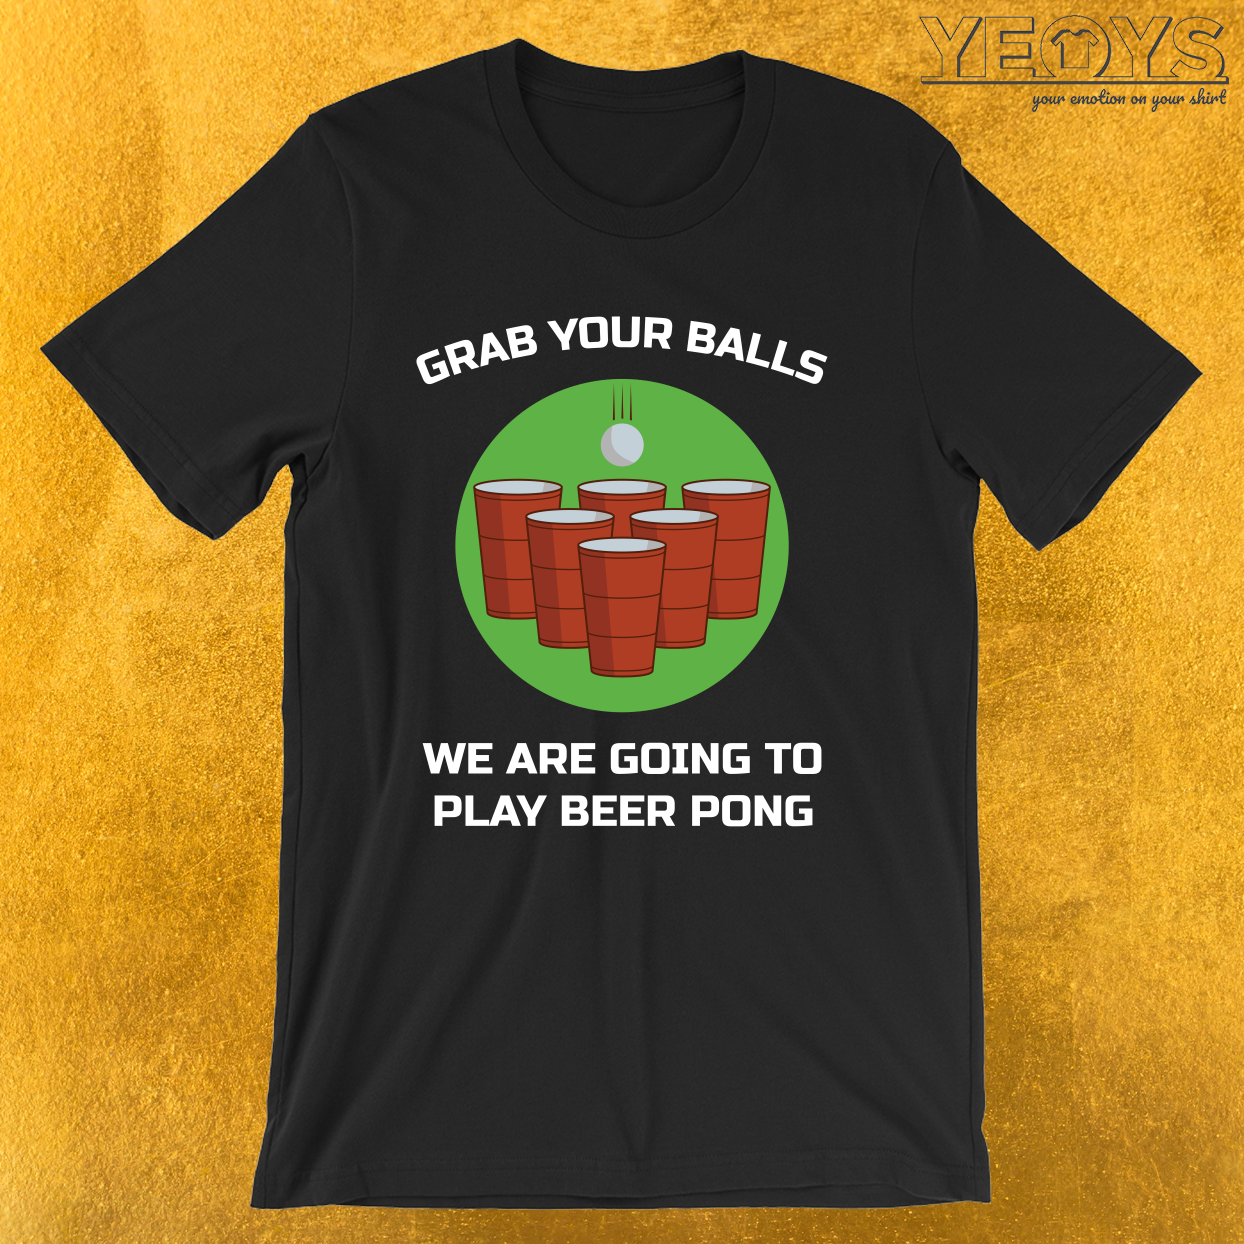 Grab Your Balls Play Beer Pong – Funny Beer Pong Tee